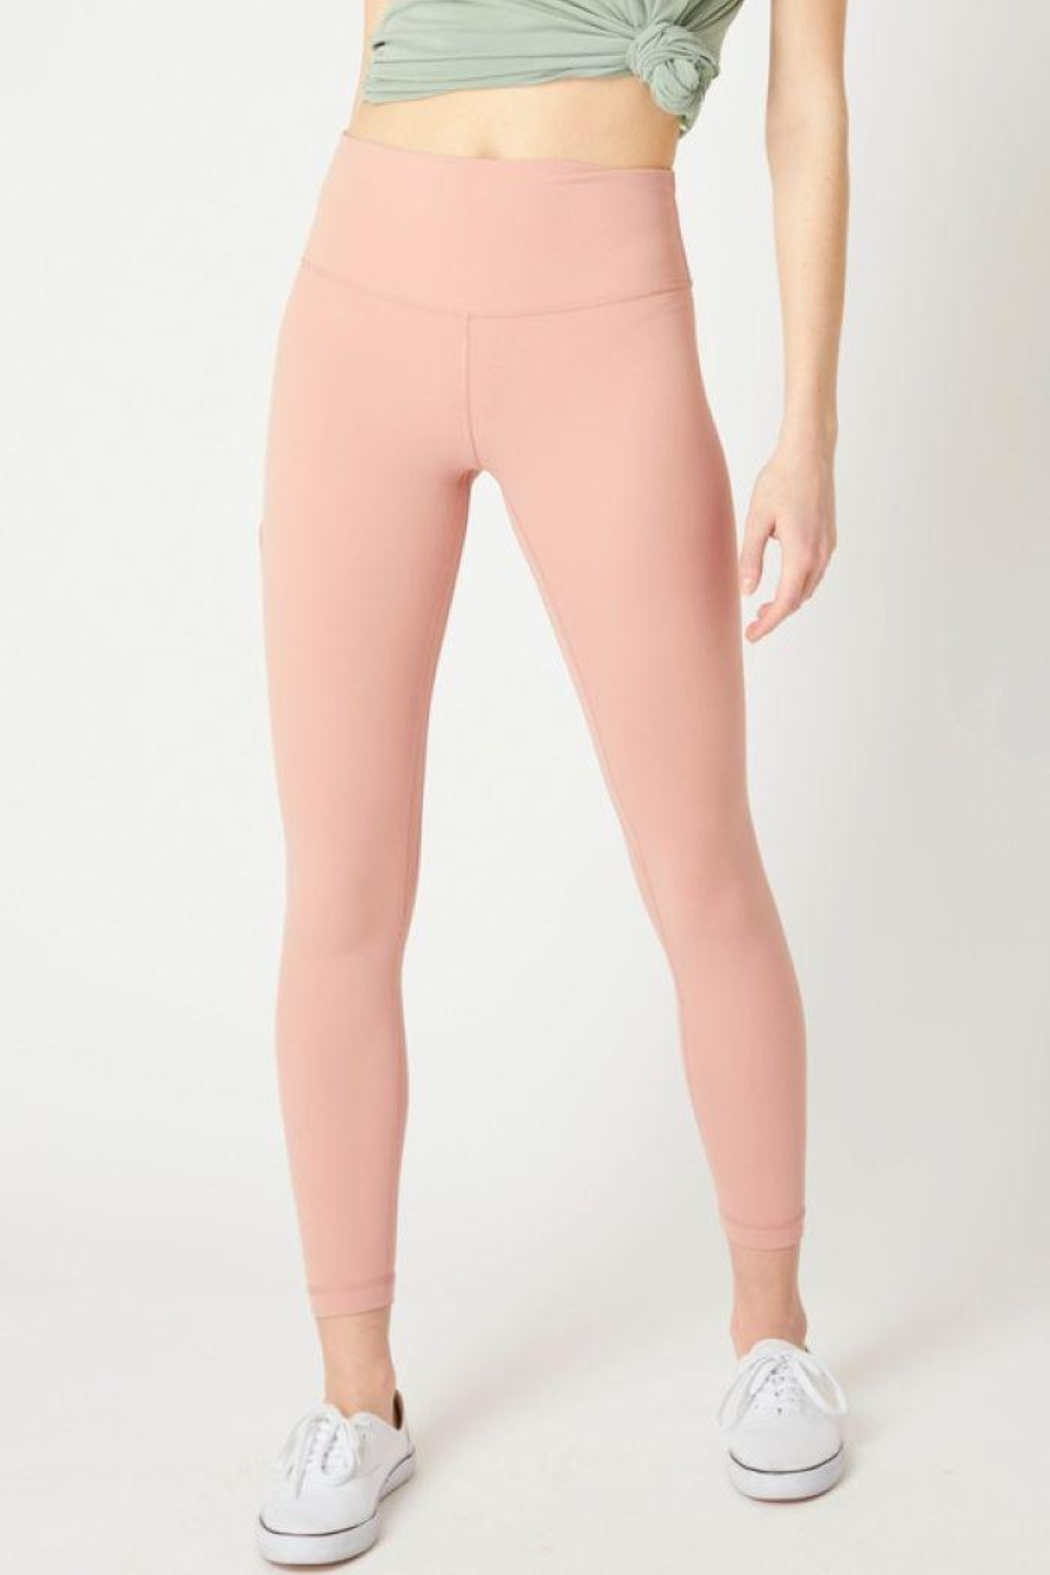 Lovetree High Waist Yoga Pants - Main Image